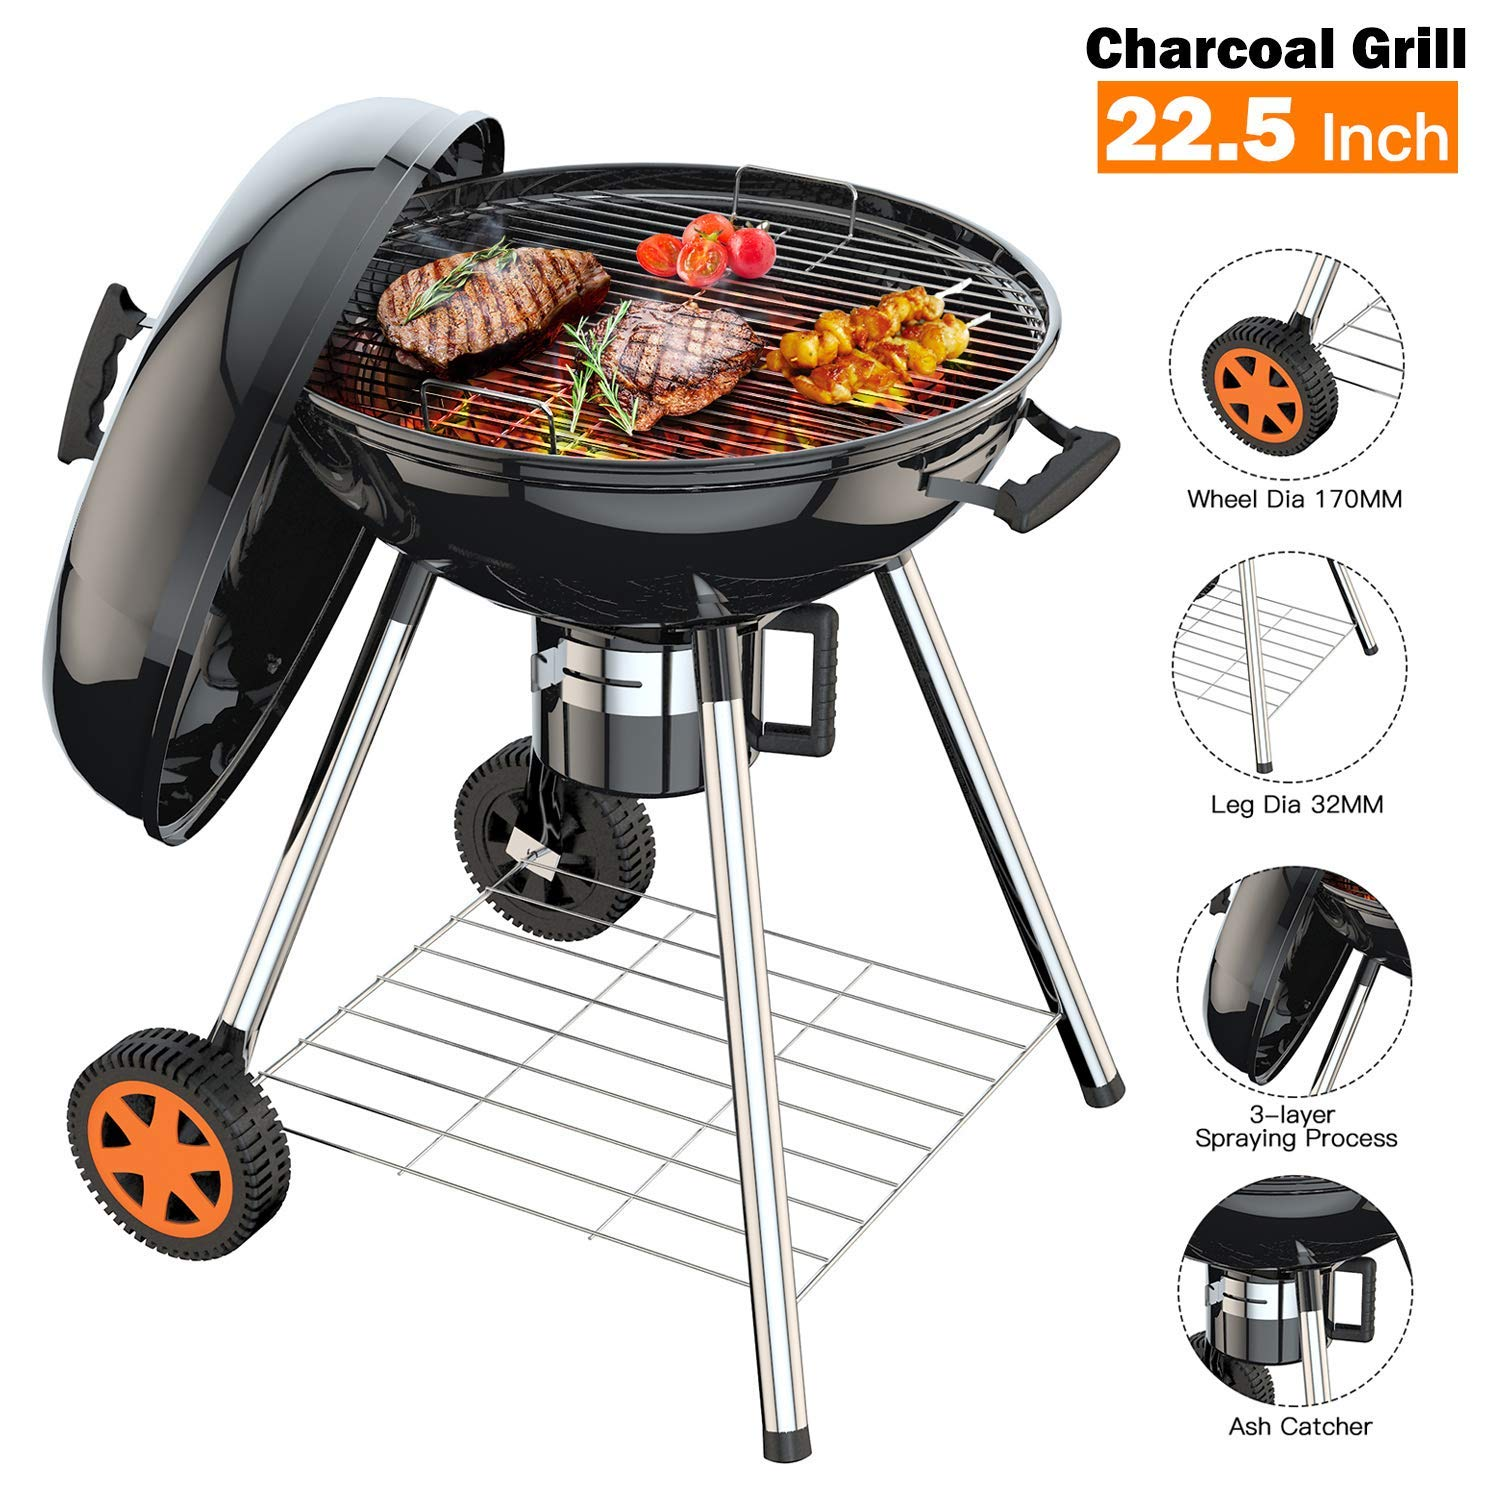 TACKLIFE Oversize Grill, 22.5 inch Charcoal Grill for Outdoor Barbecue, Picnic Patio Backyard Camping Cooking Grate